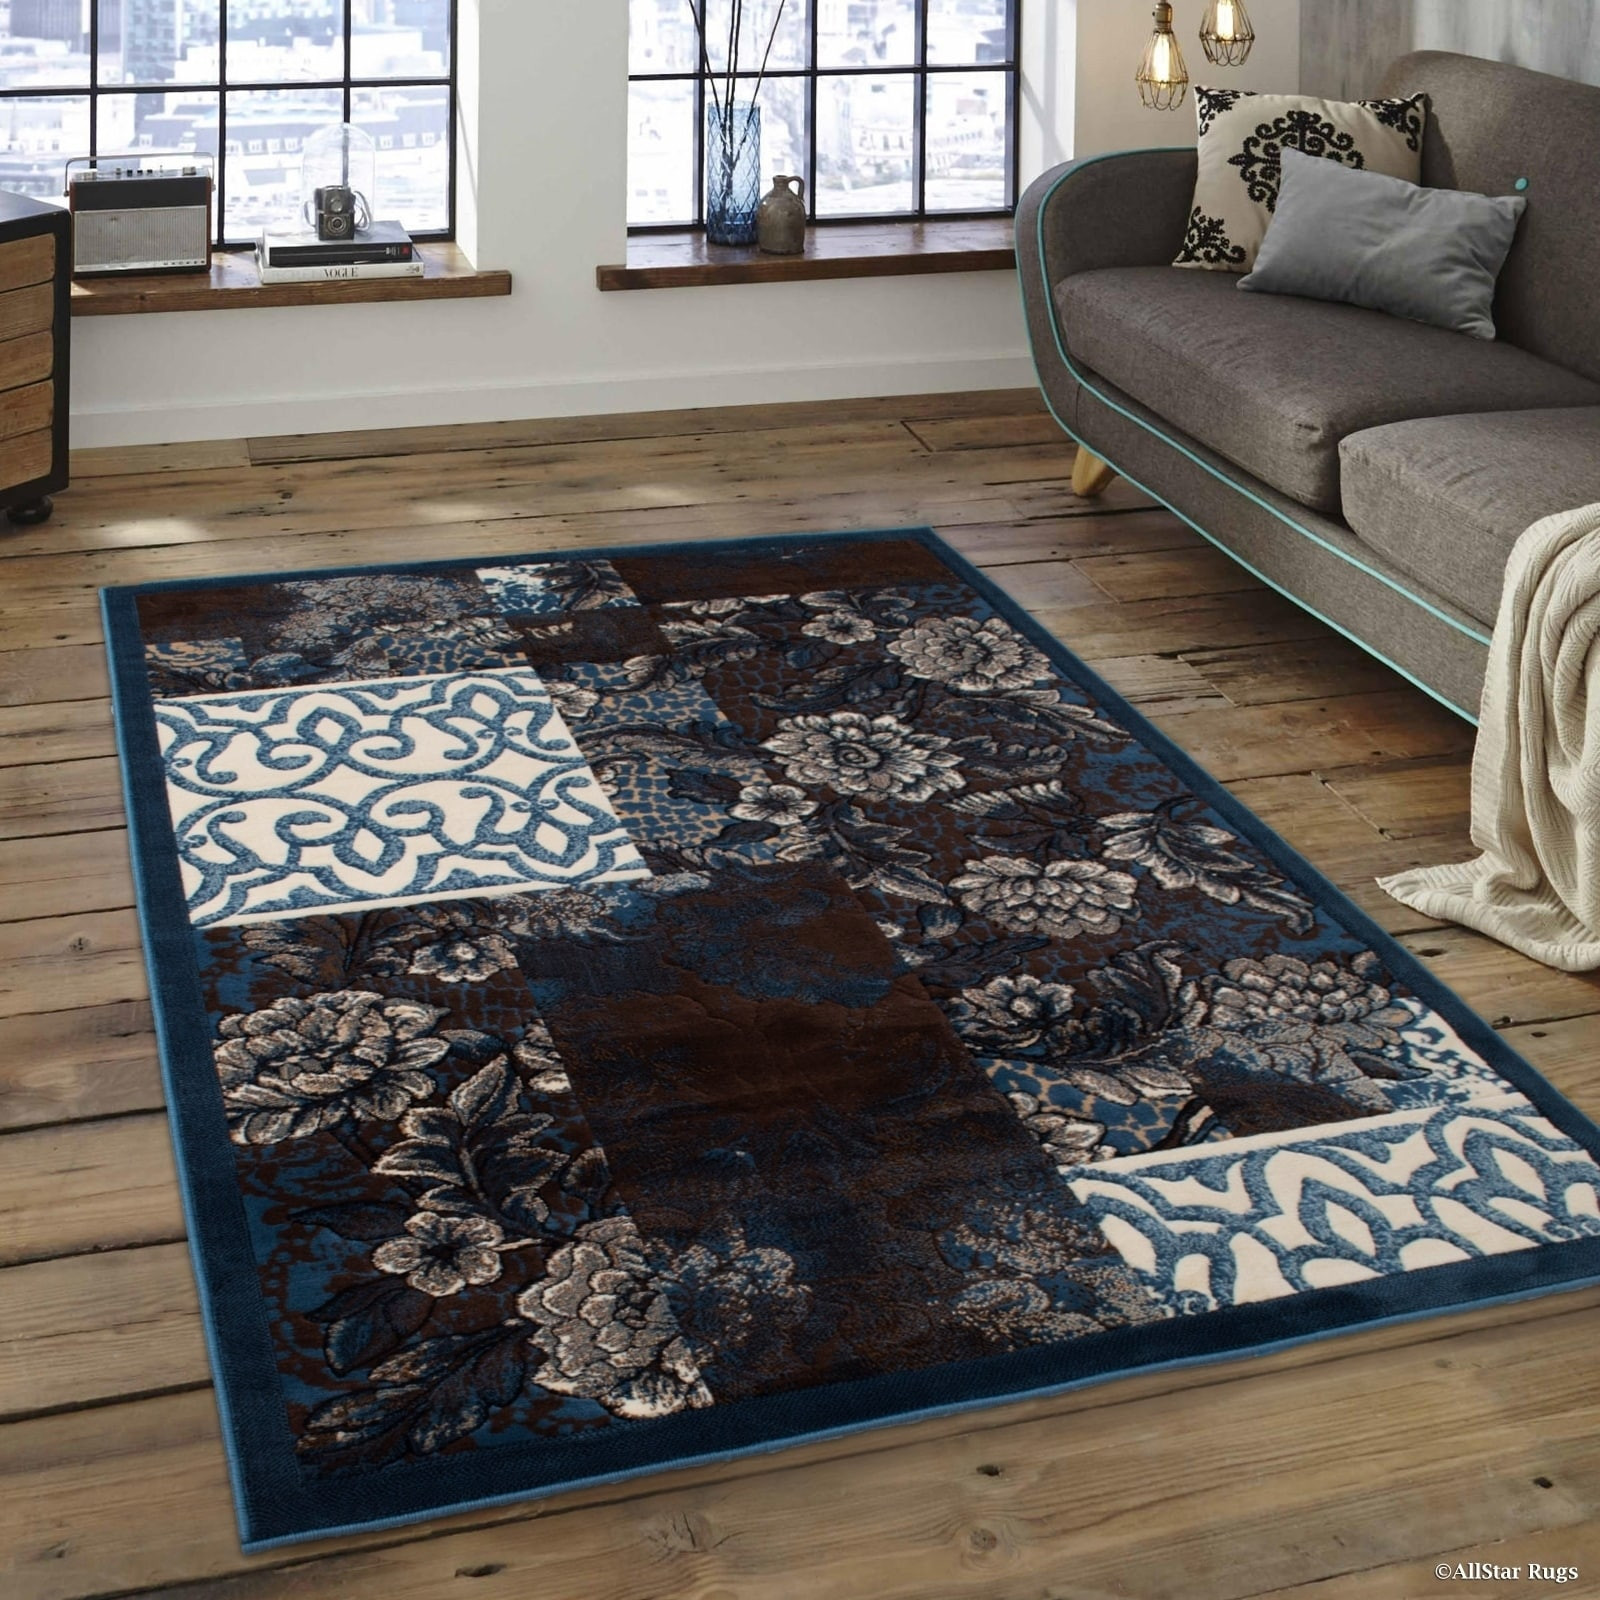 "Allstar Rugs Allstar Aqua Blue Assorted Abstract Floral Traditional Rug - 7' 1"" x 5' 2"""